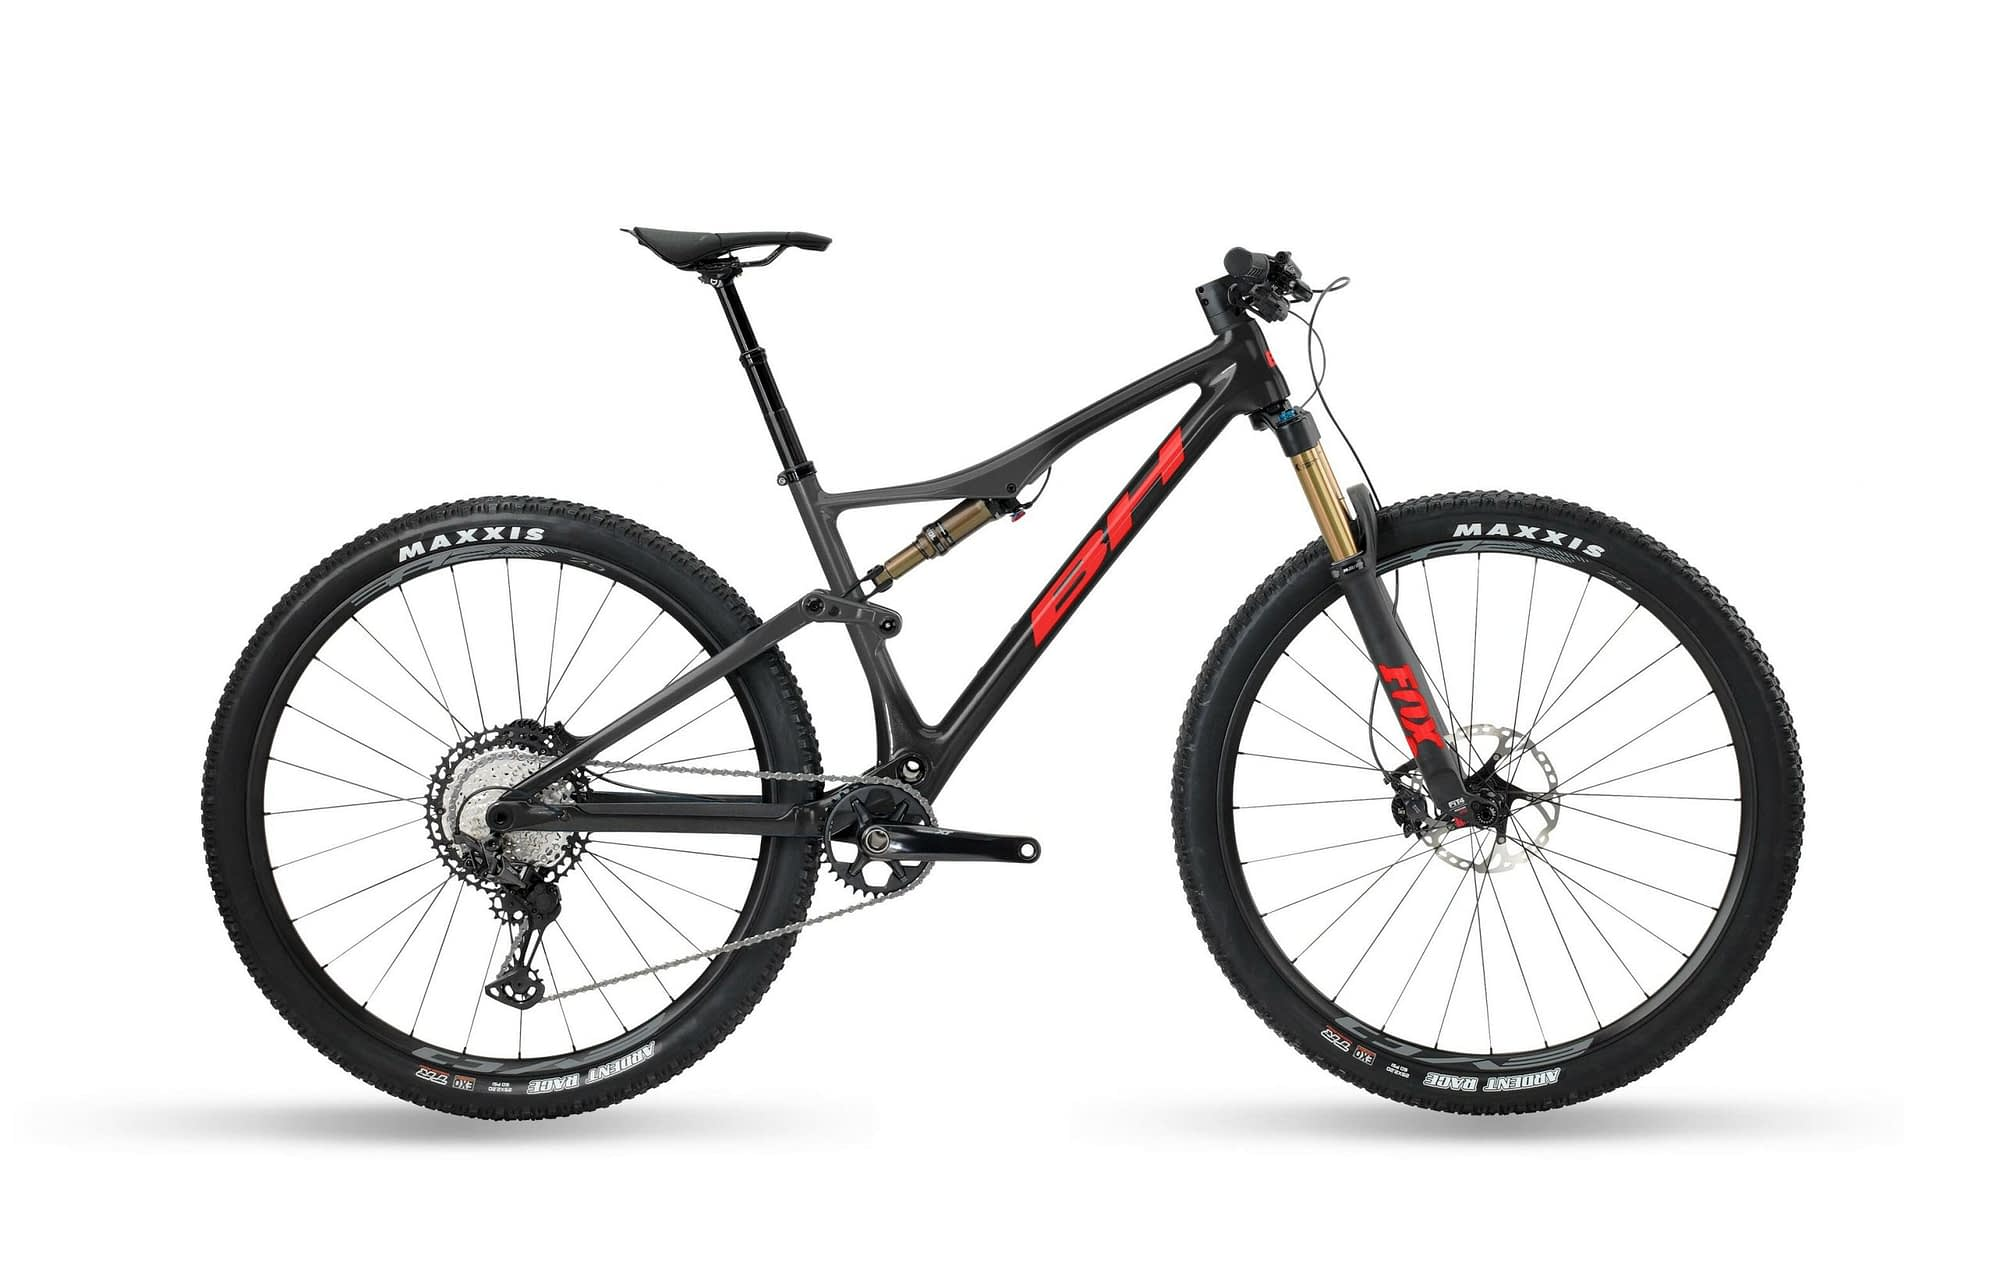 BH LYNX RACE EVO CARBON 9.0 LT - Anthracite / Rouge, M